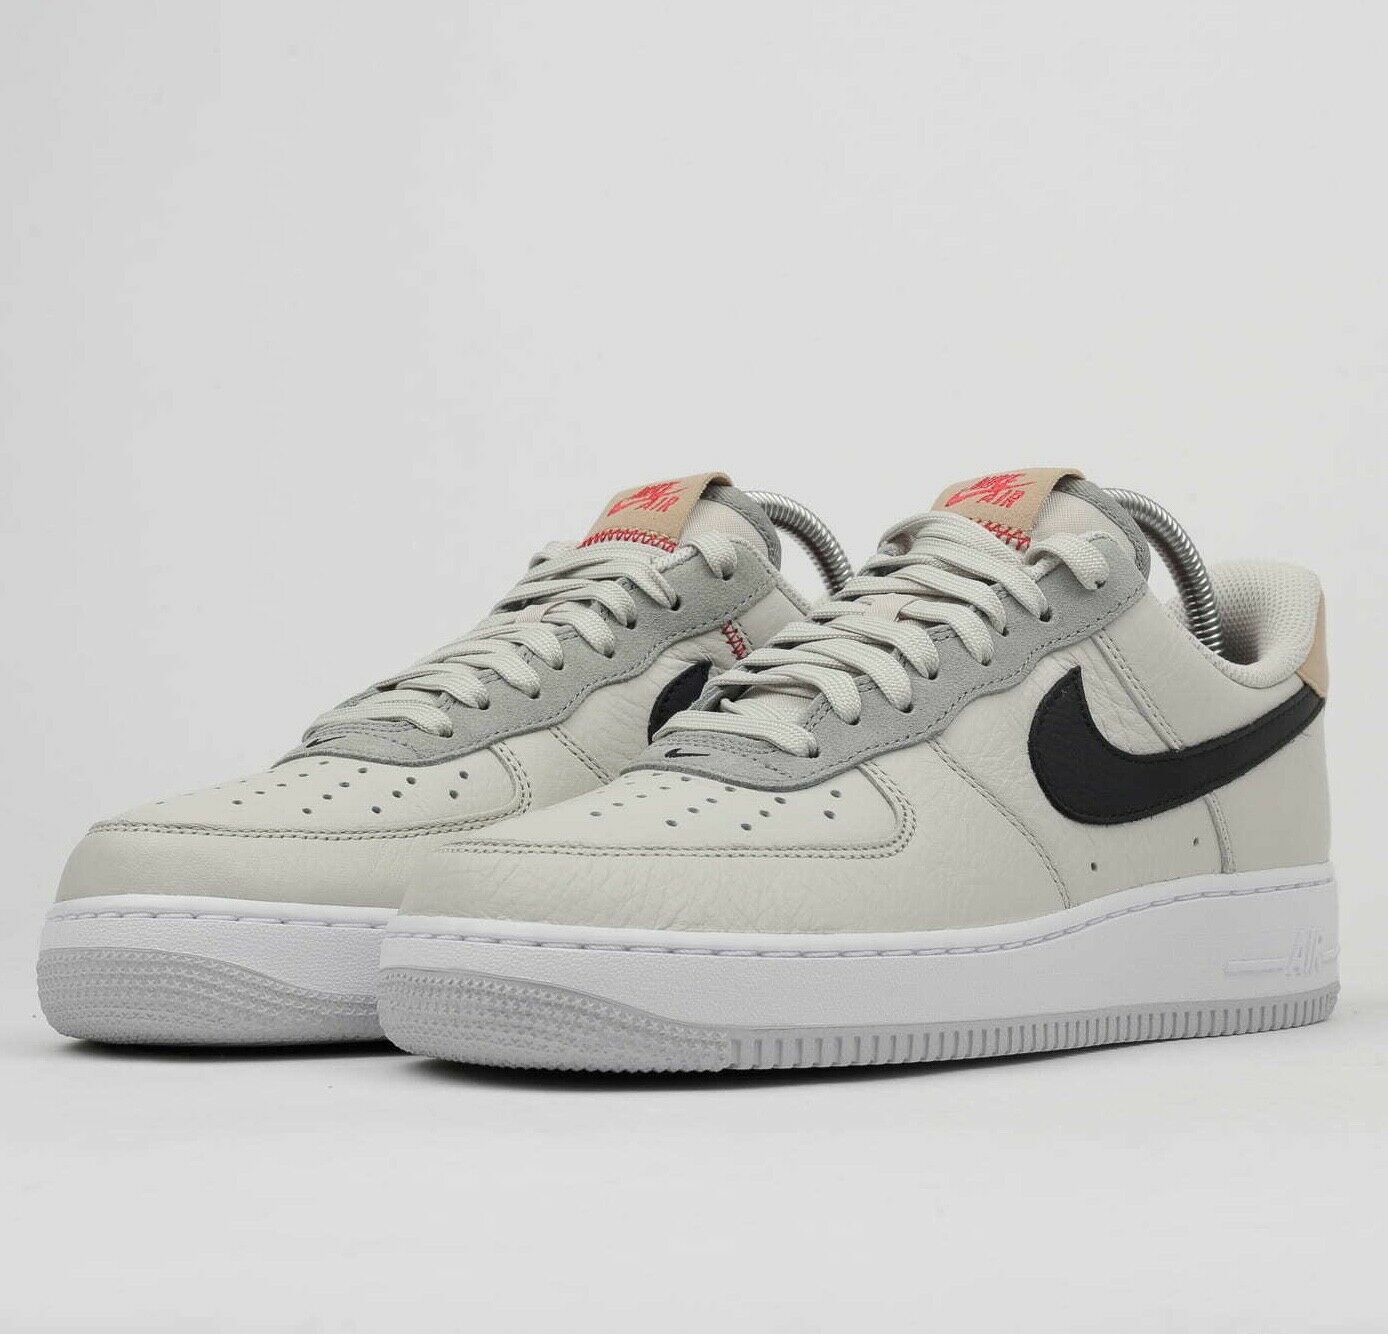 284fbfbca8 Nike Air Force 1 '07 Light Bone BV0322-001 AF1 Mens Basketball shoes  Sneakers